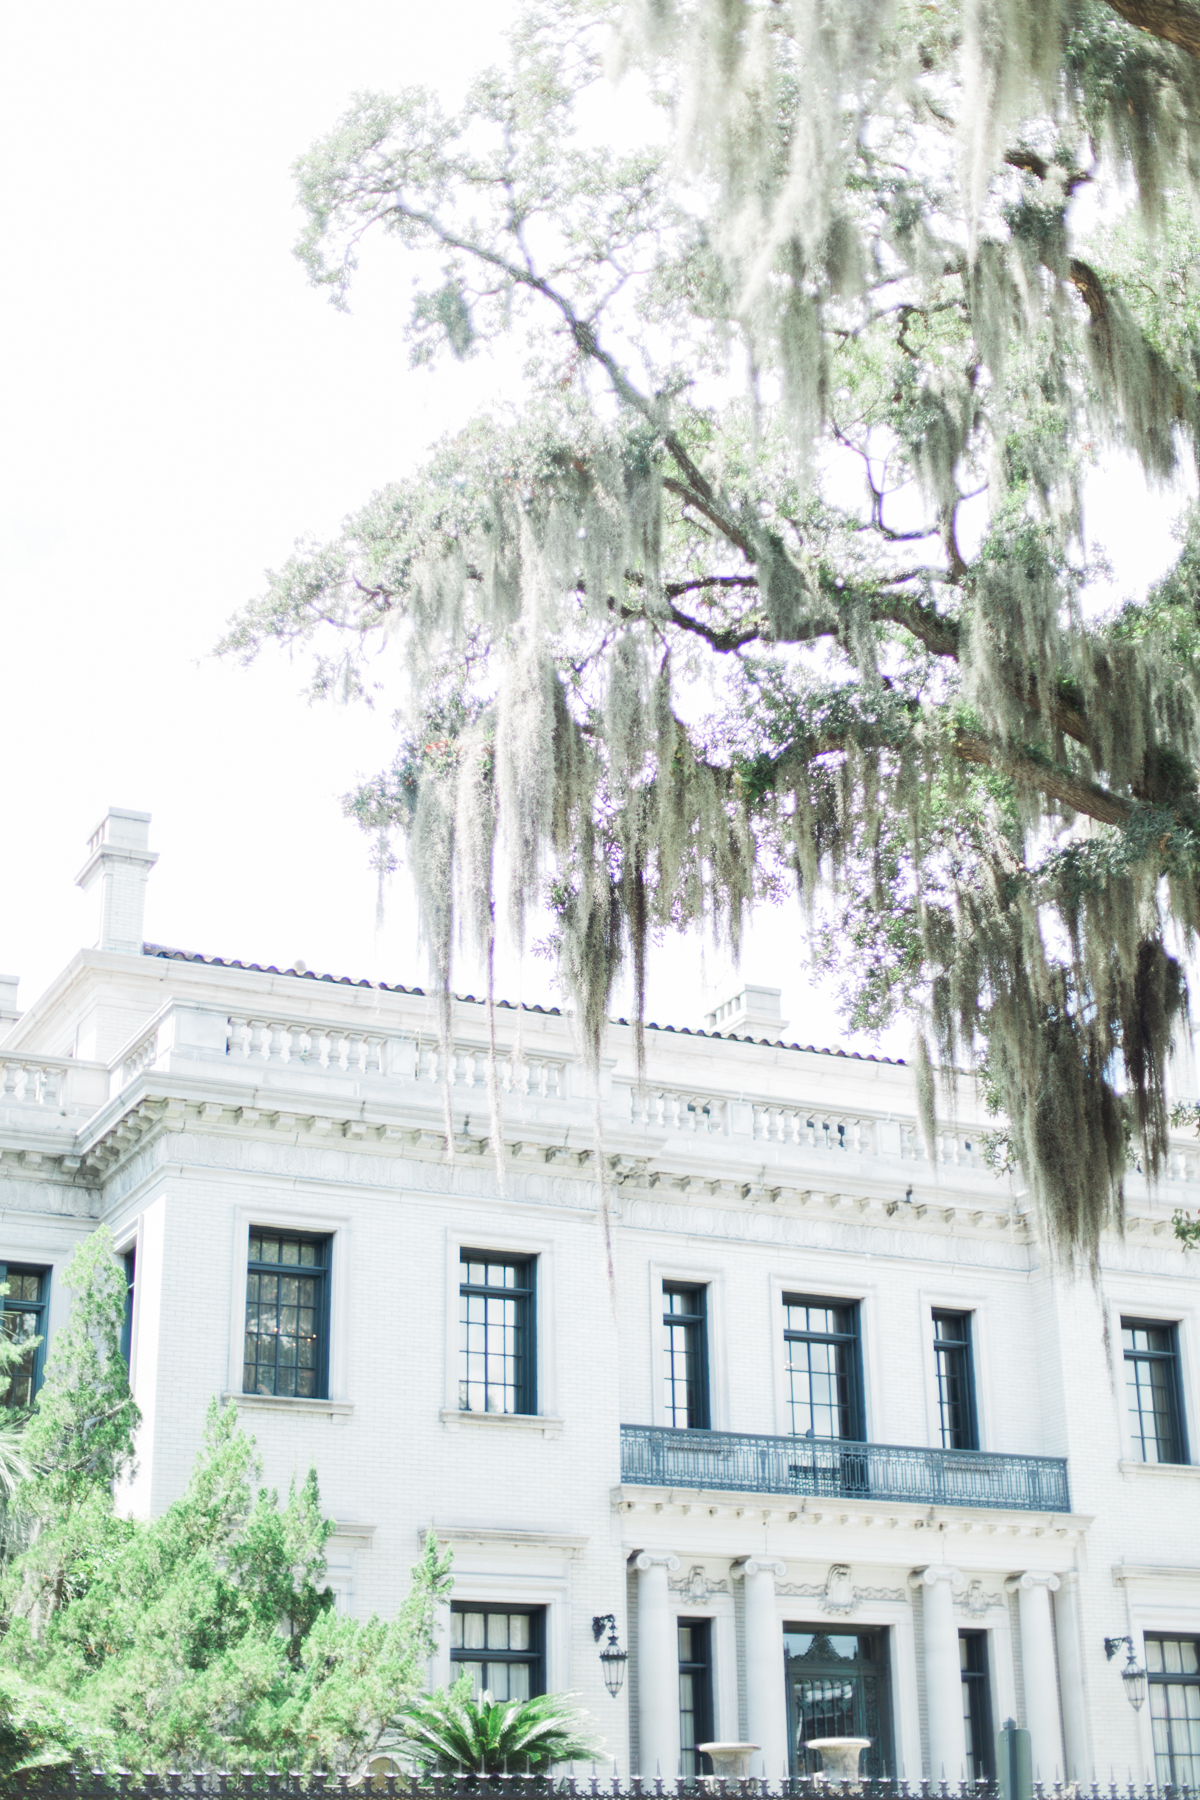 McKenna_Bleu_Fashion_Style_Fall_Travel_Blog_Savannah_Georgia_photo-2735